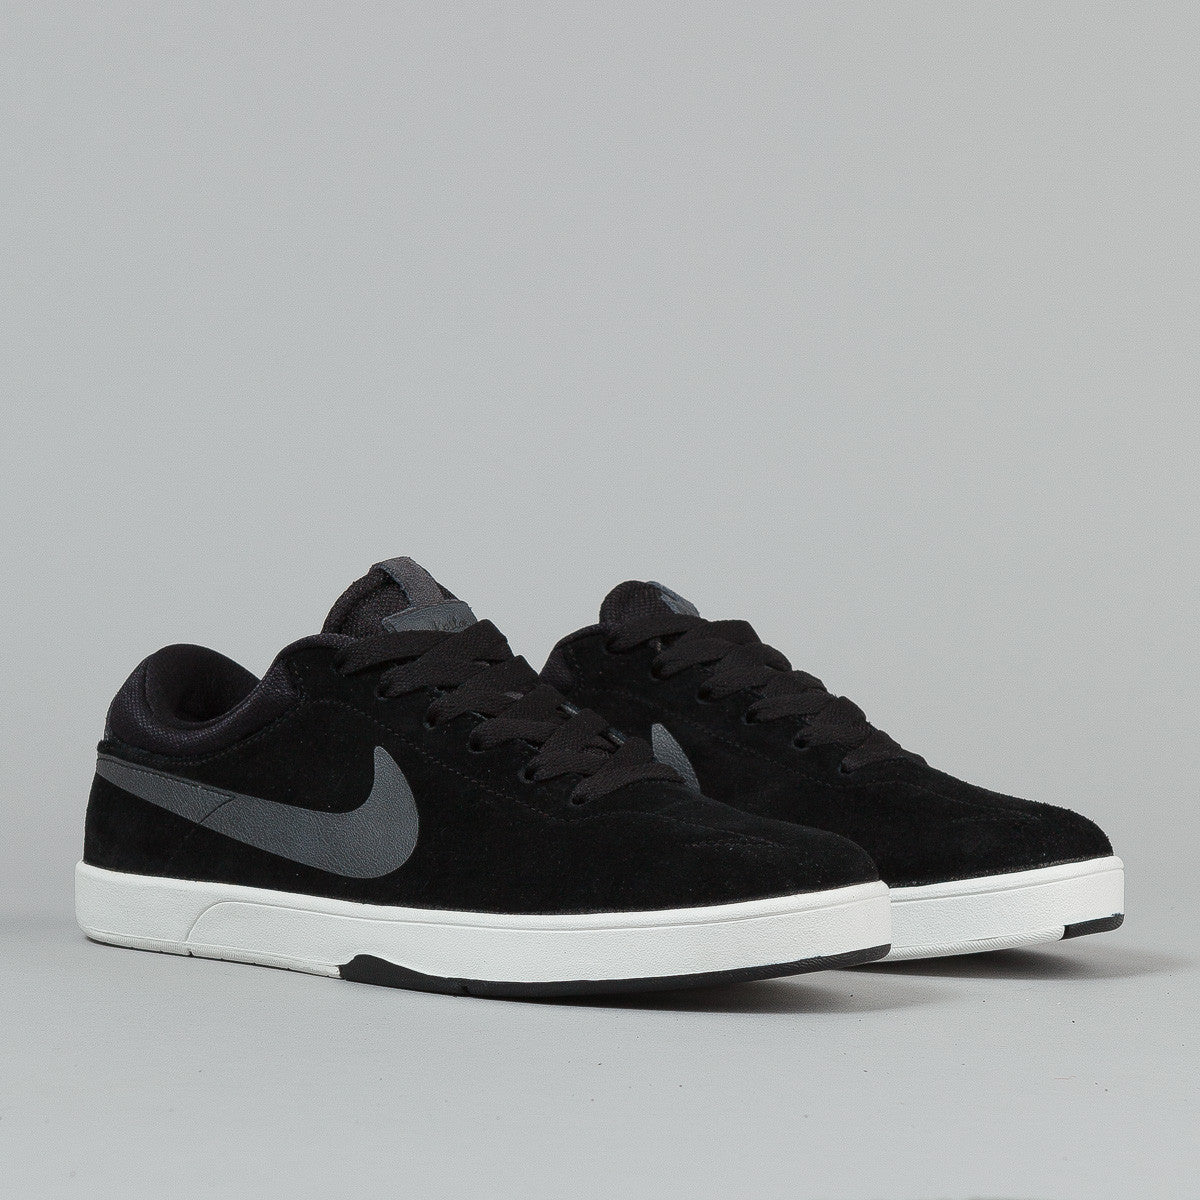 Nike SB Eric Koston 1 Black/Dark Grey - Summit White